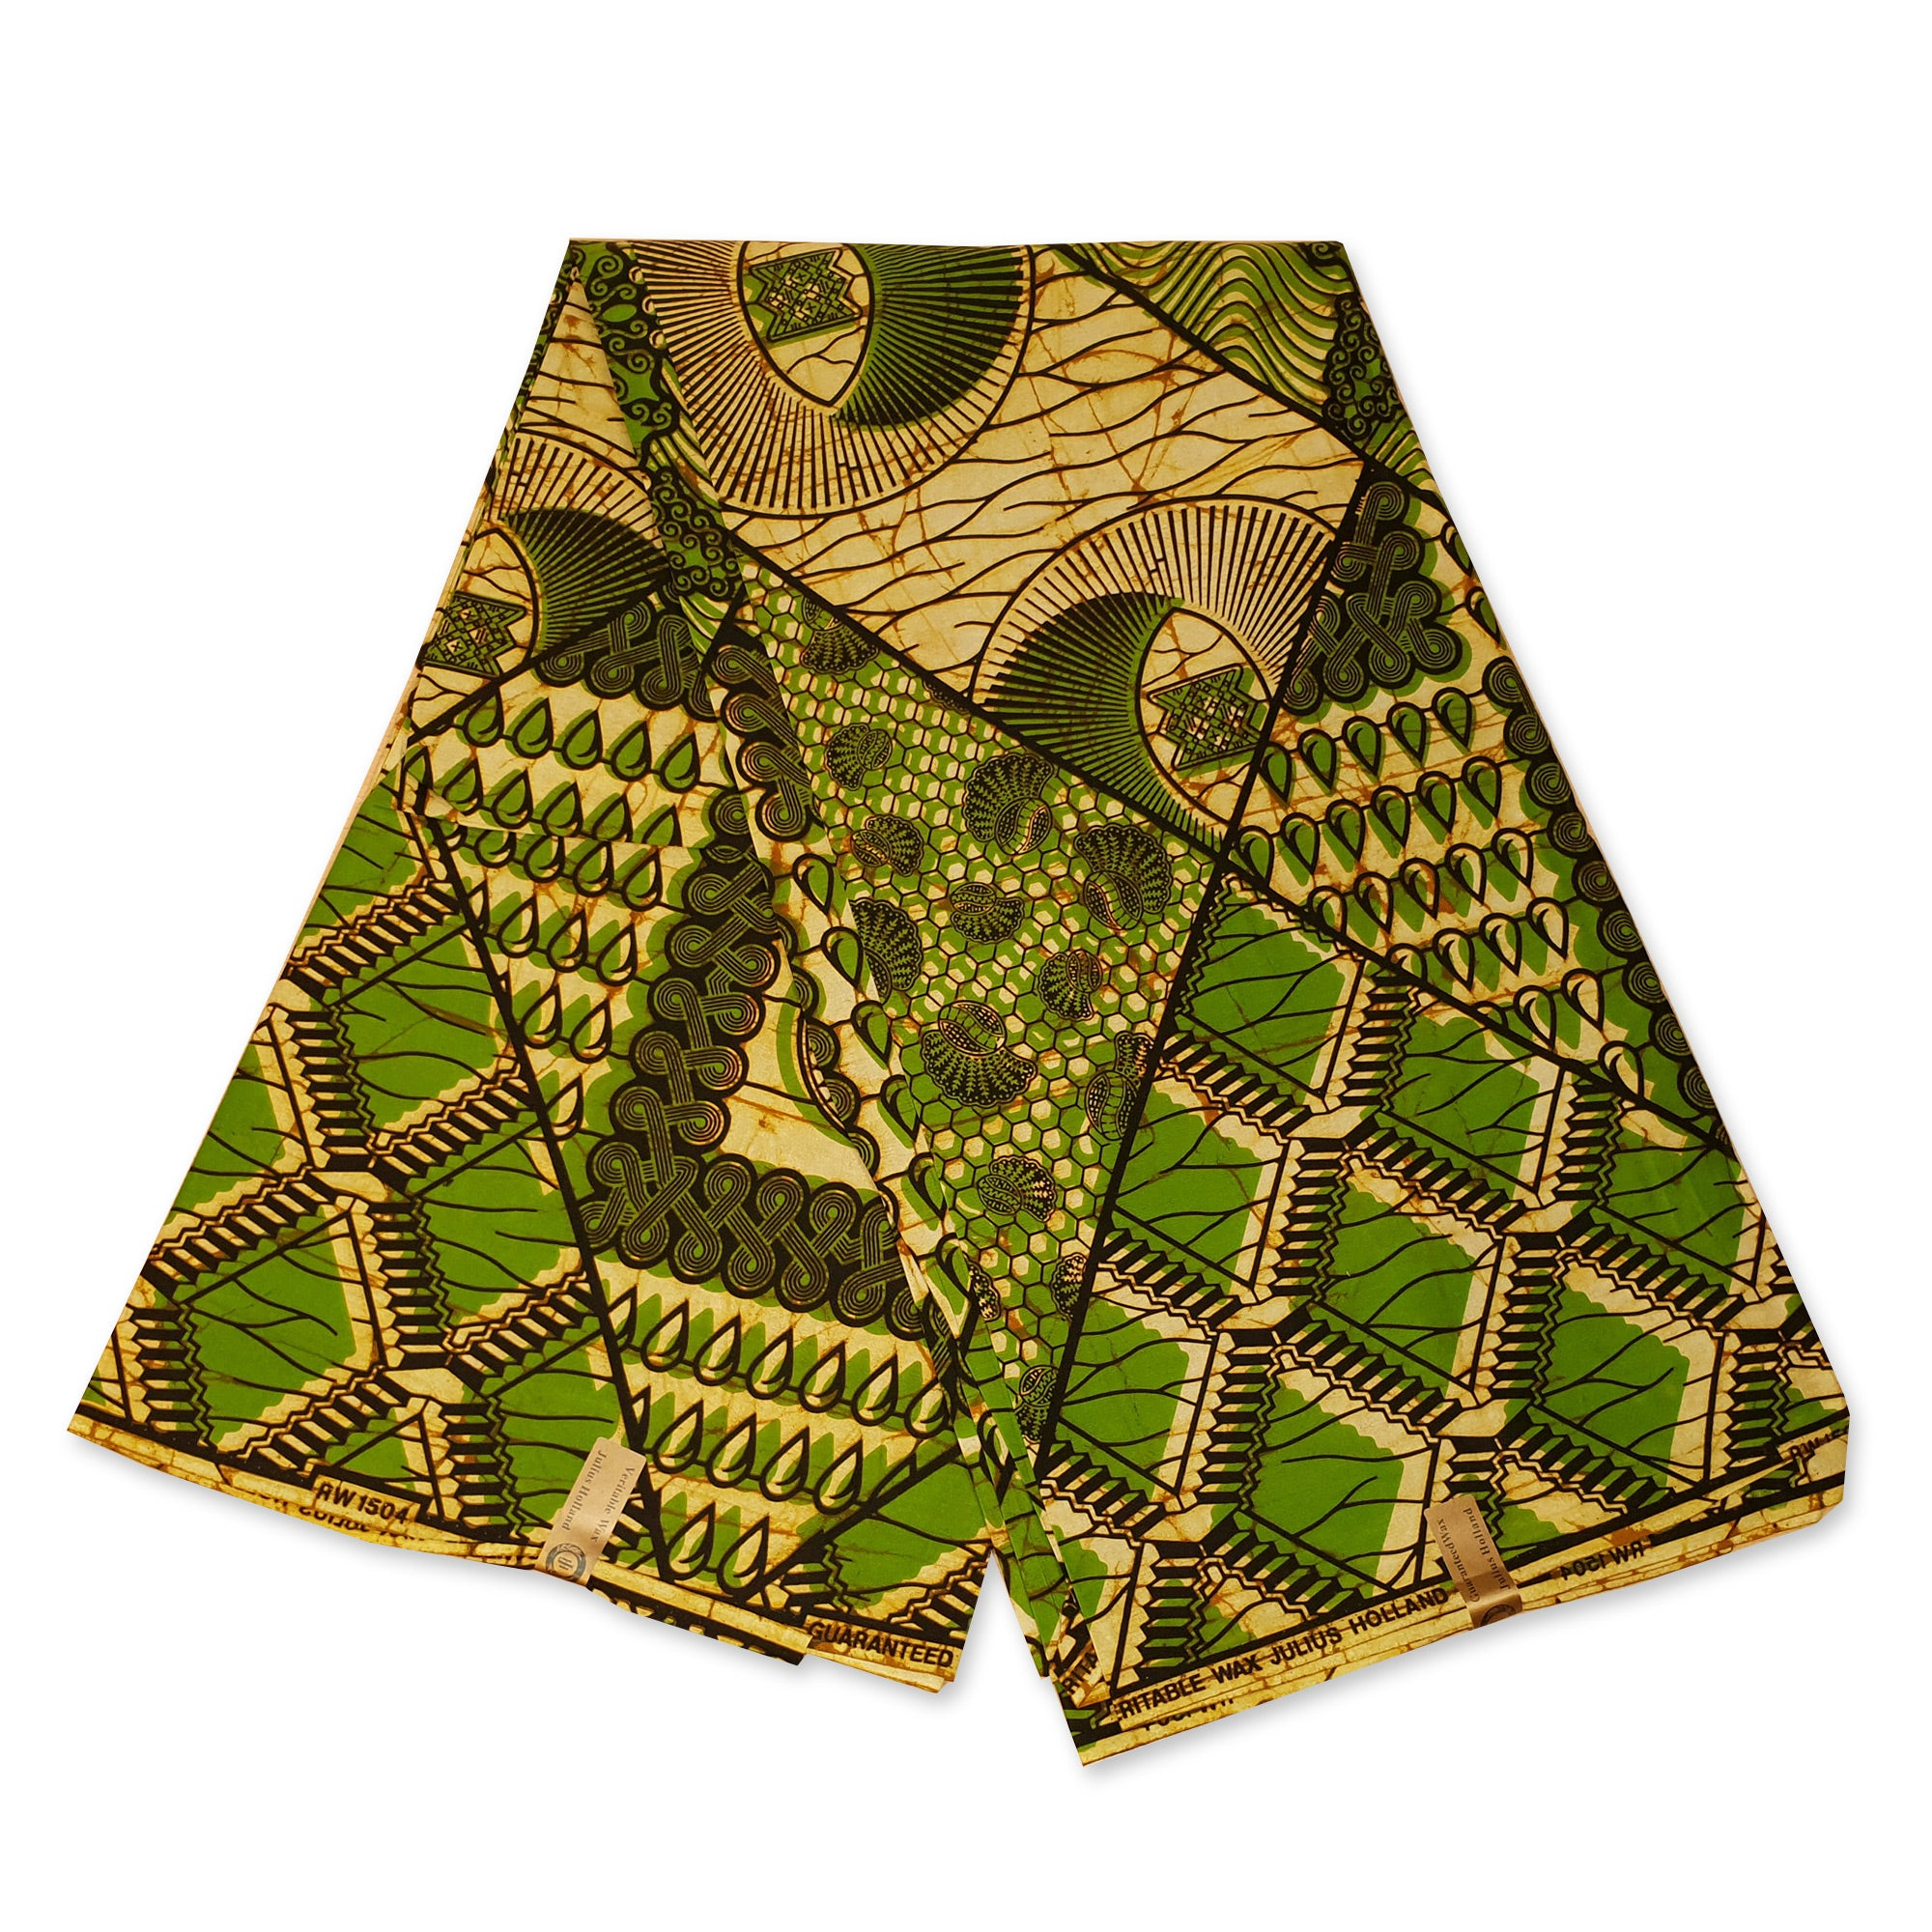 African Wax print fabric - Green ancient history